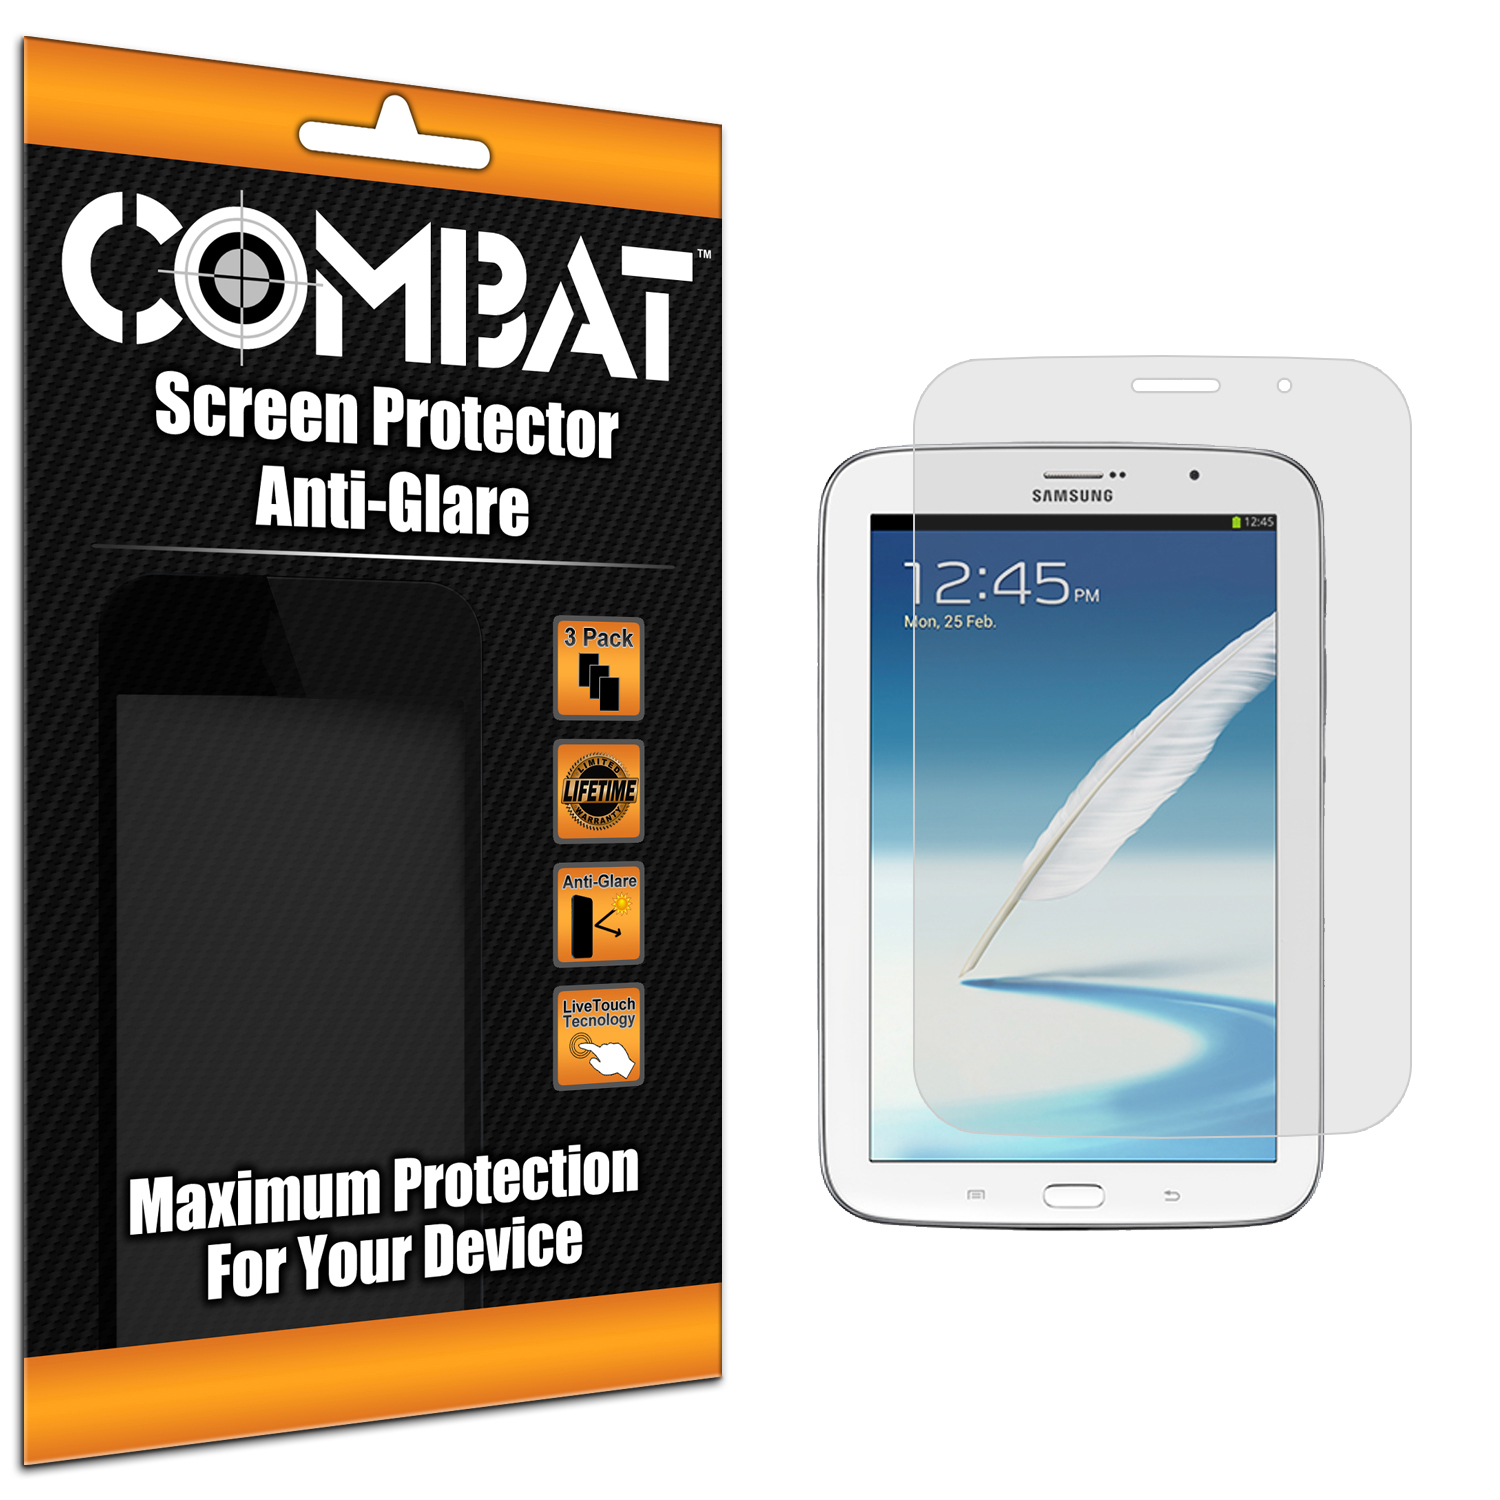 Samsung Galaxy Note 8.0 Combat 3 Pack Anti-Glare Matte Screen Protector